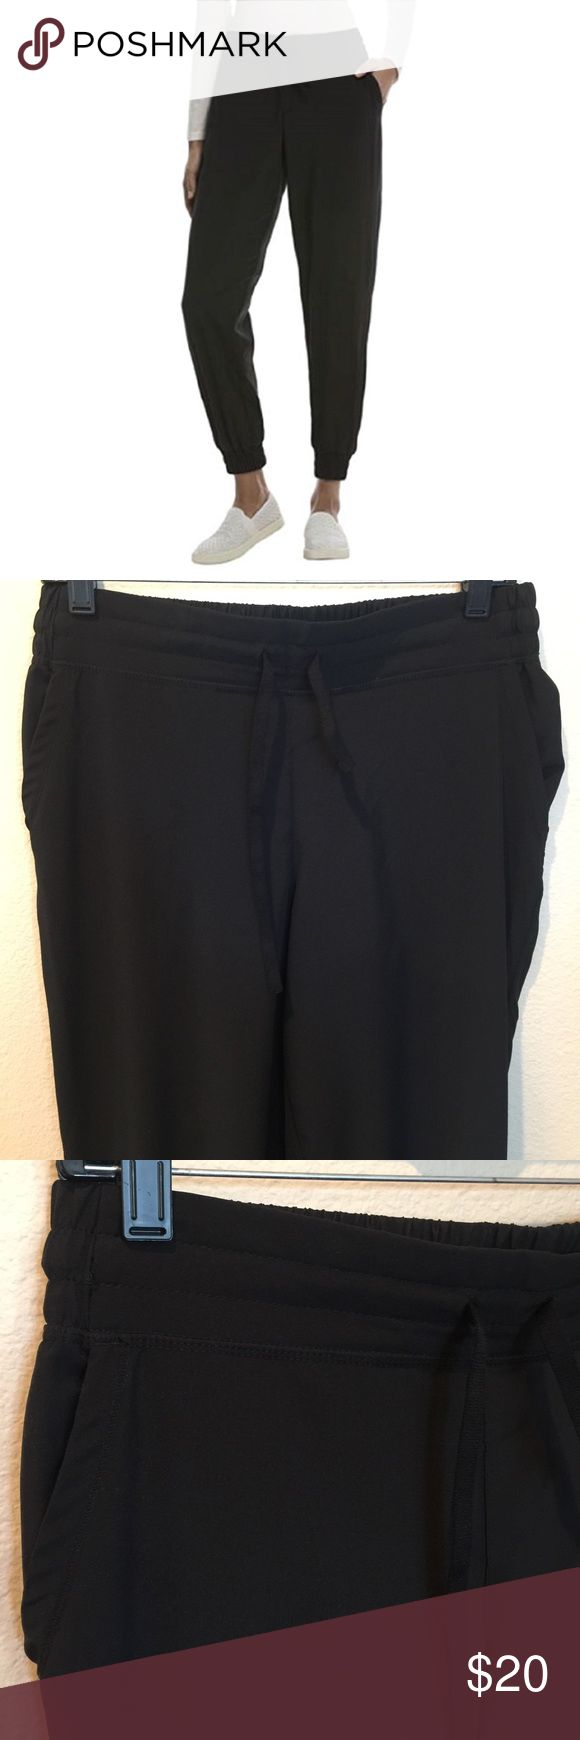 32 Degree Cool Women's Jogger Pant 32COOL™ fabric is soft, lightweight, and breathable. Moisture wicking keeps you dry and comfortable 4 functional pockets; 2 front angled pockets, 2 back patch pockets. Elastic waistband in the back. Front functional drawstring. Worn once. Excellent condition. 32 Degree Pants Track Pants & Joggers